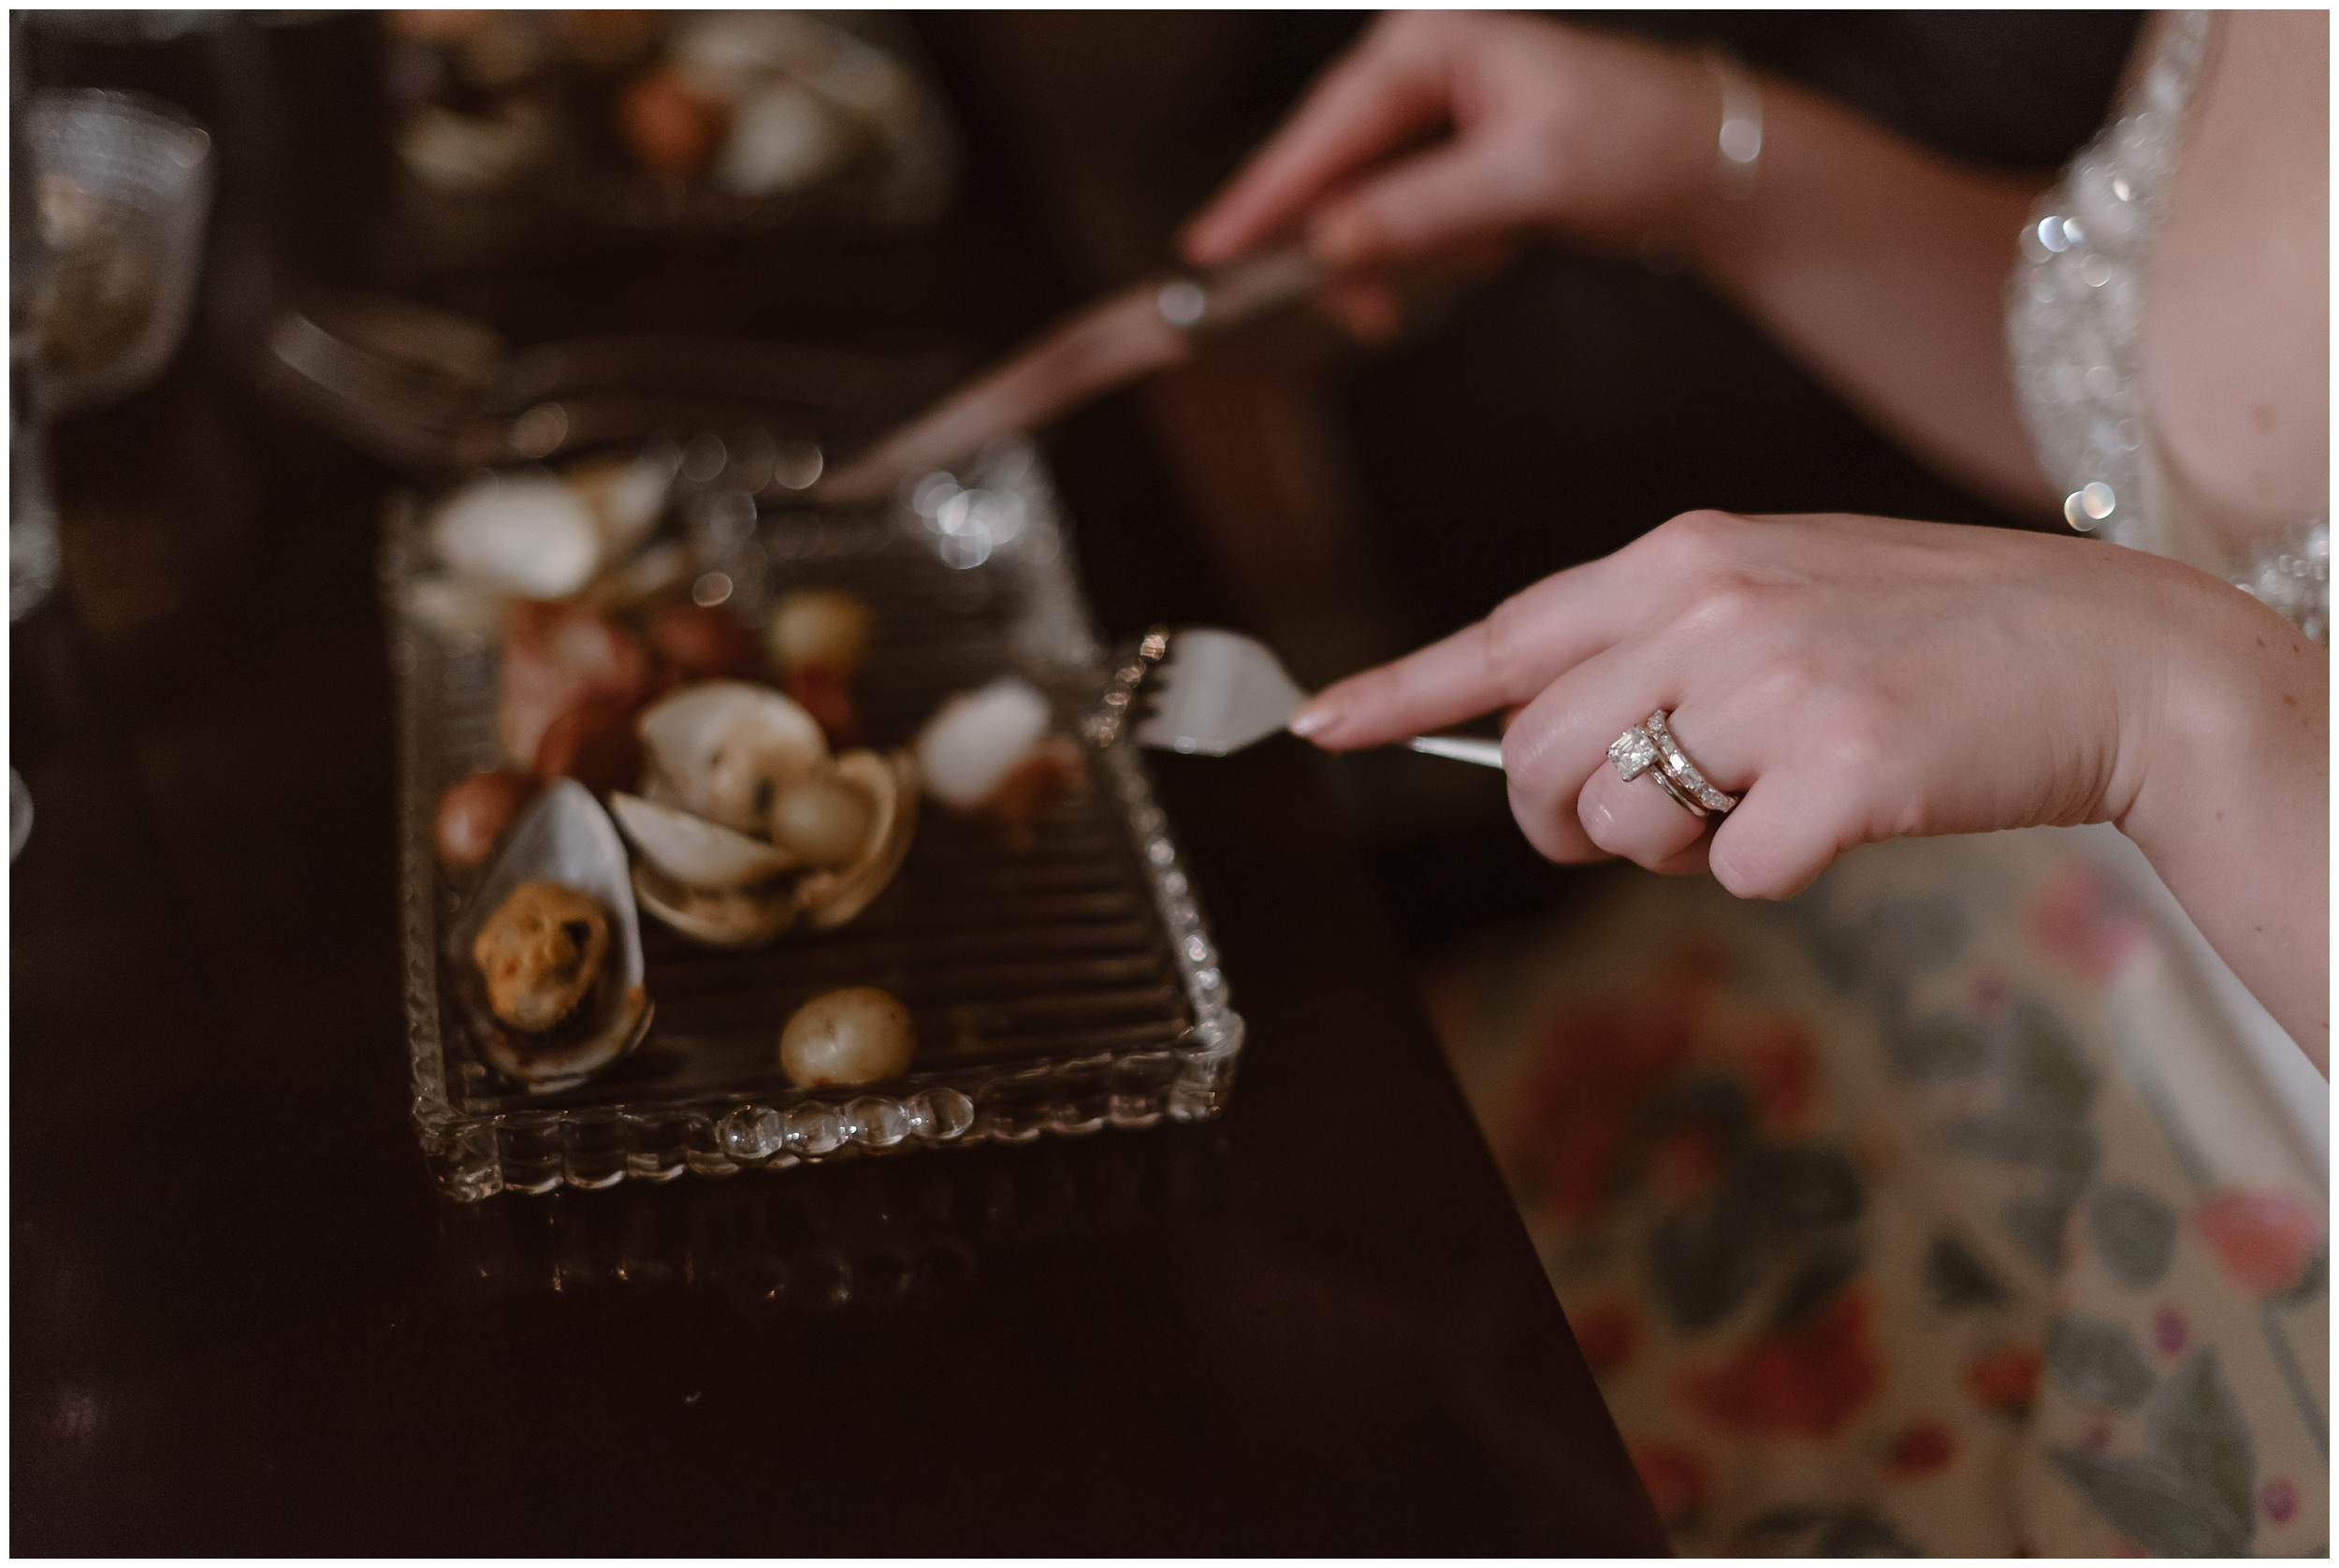 The bride uses her knife and fork to cut into a beautiful selection of gourmet food prepared by the private chefs she and her new husband hired as part of their reception after eloping.